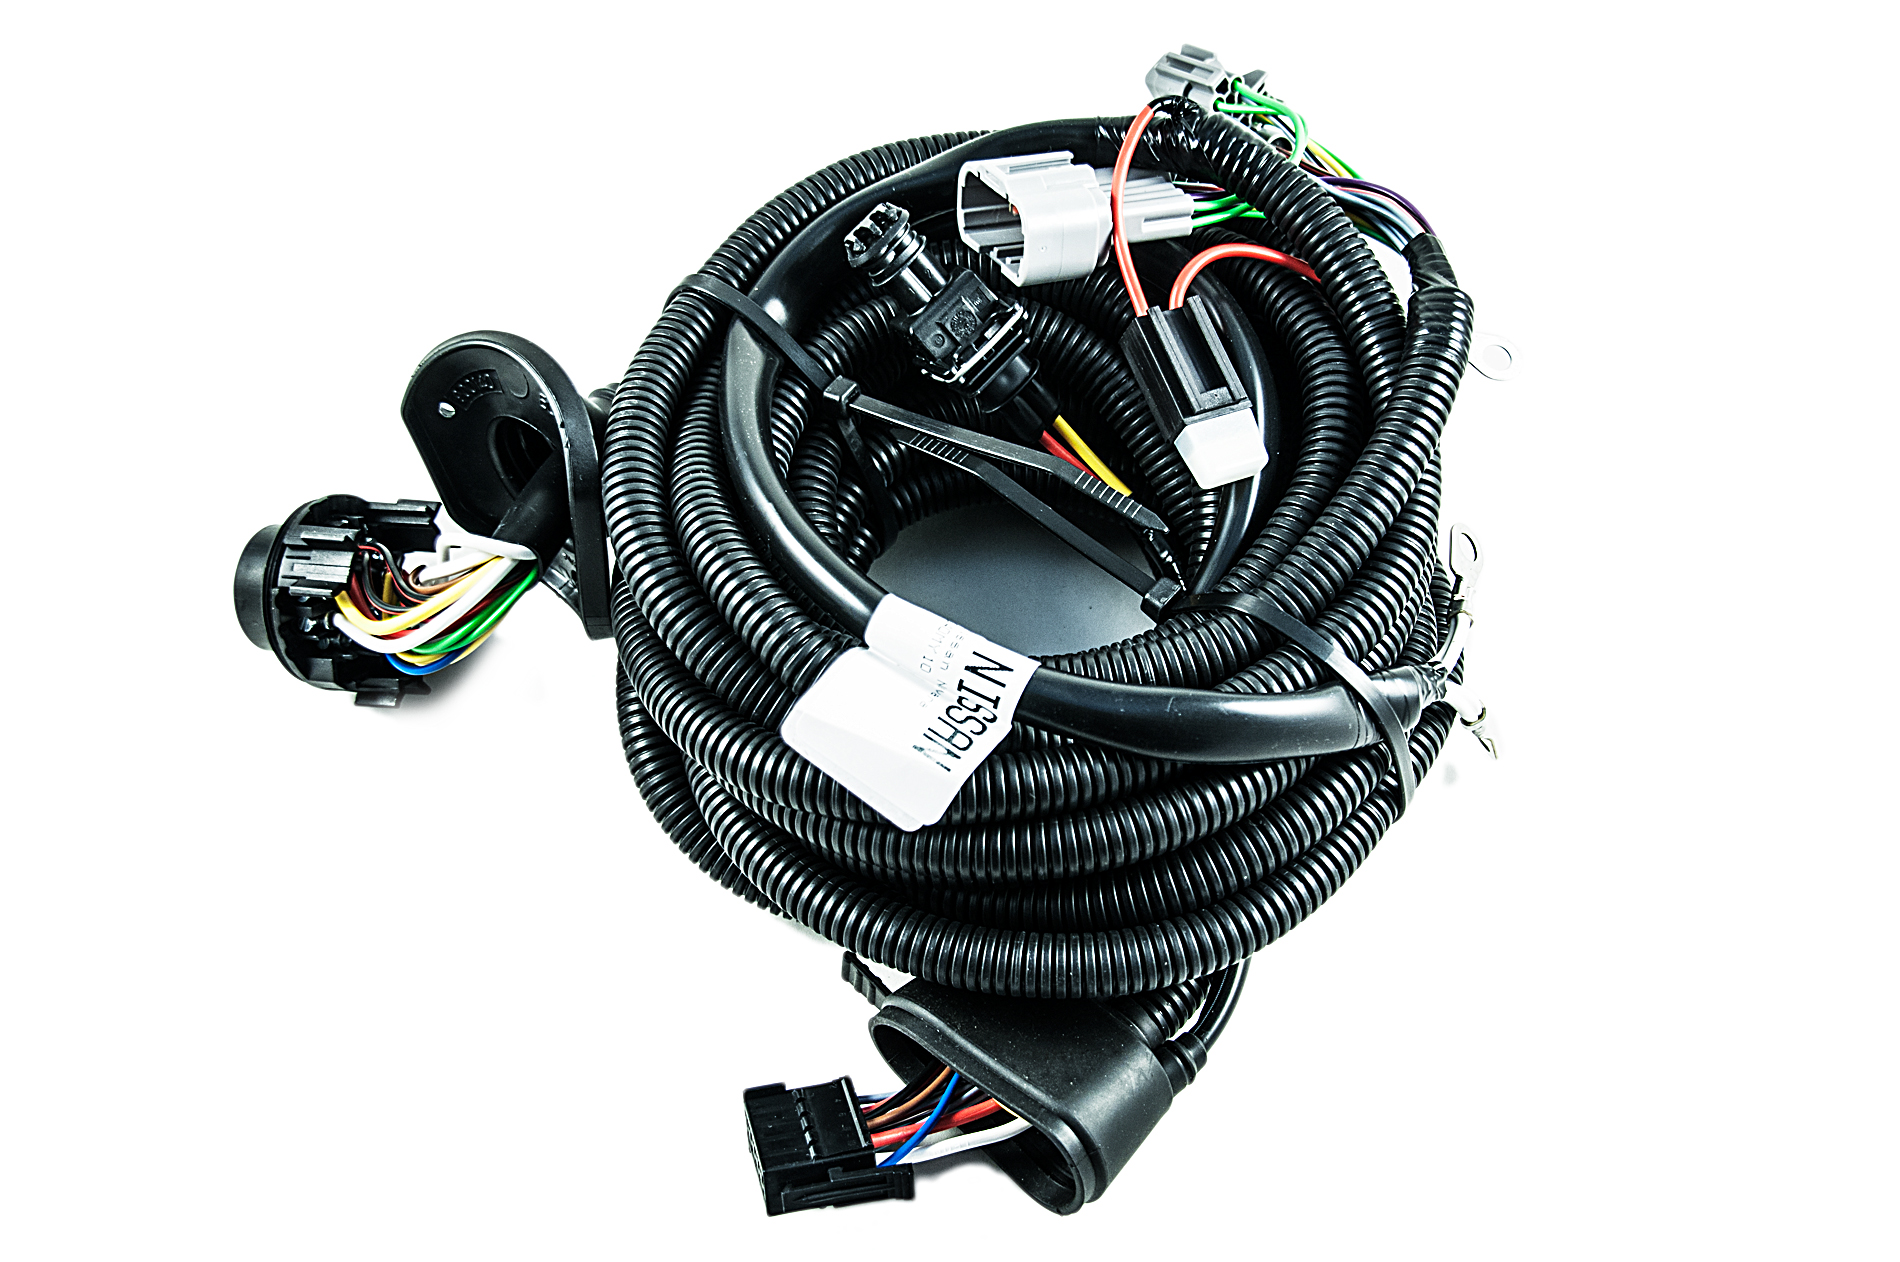 Navara d40 towbar wiring diagram the best wiring diagram 2017 nissan navara d40 towbar wiring diagram asfbconference2016 Image collections